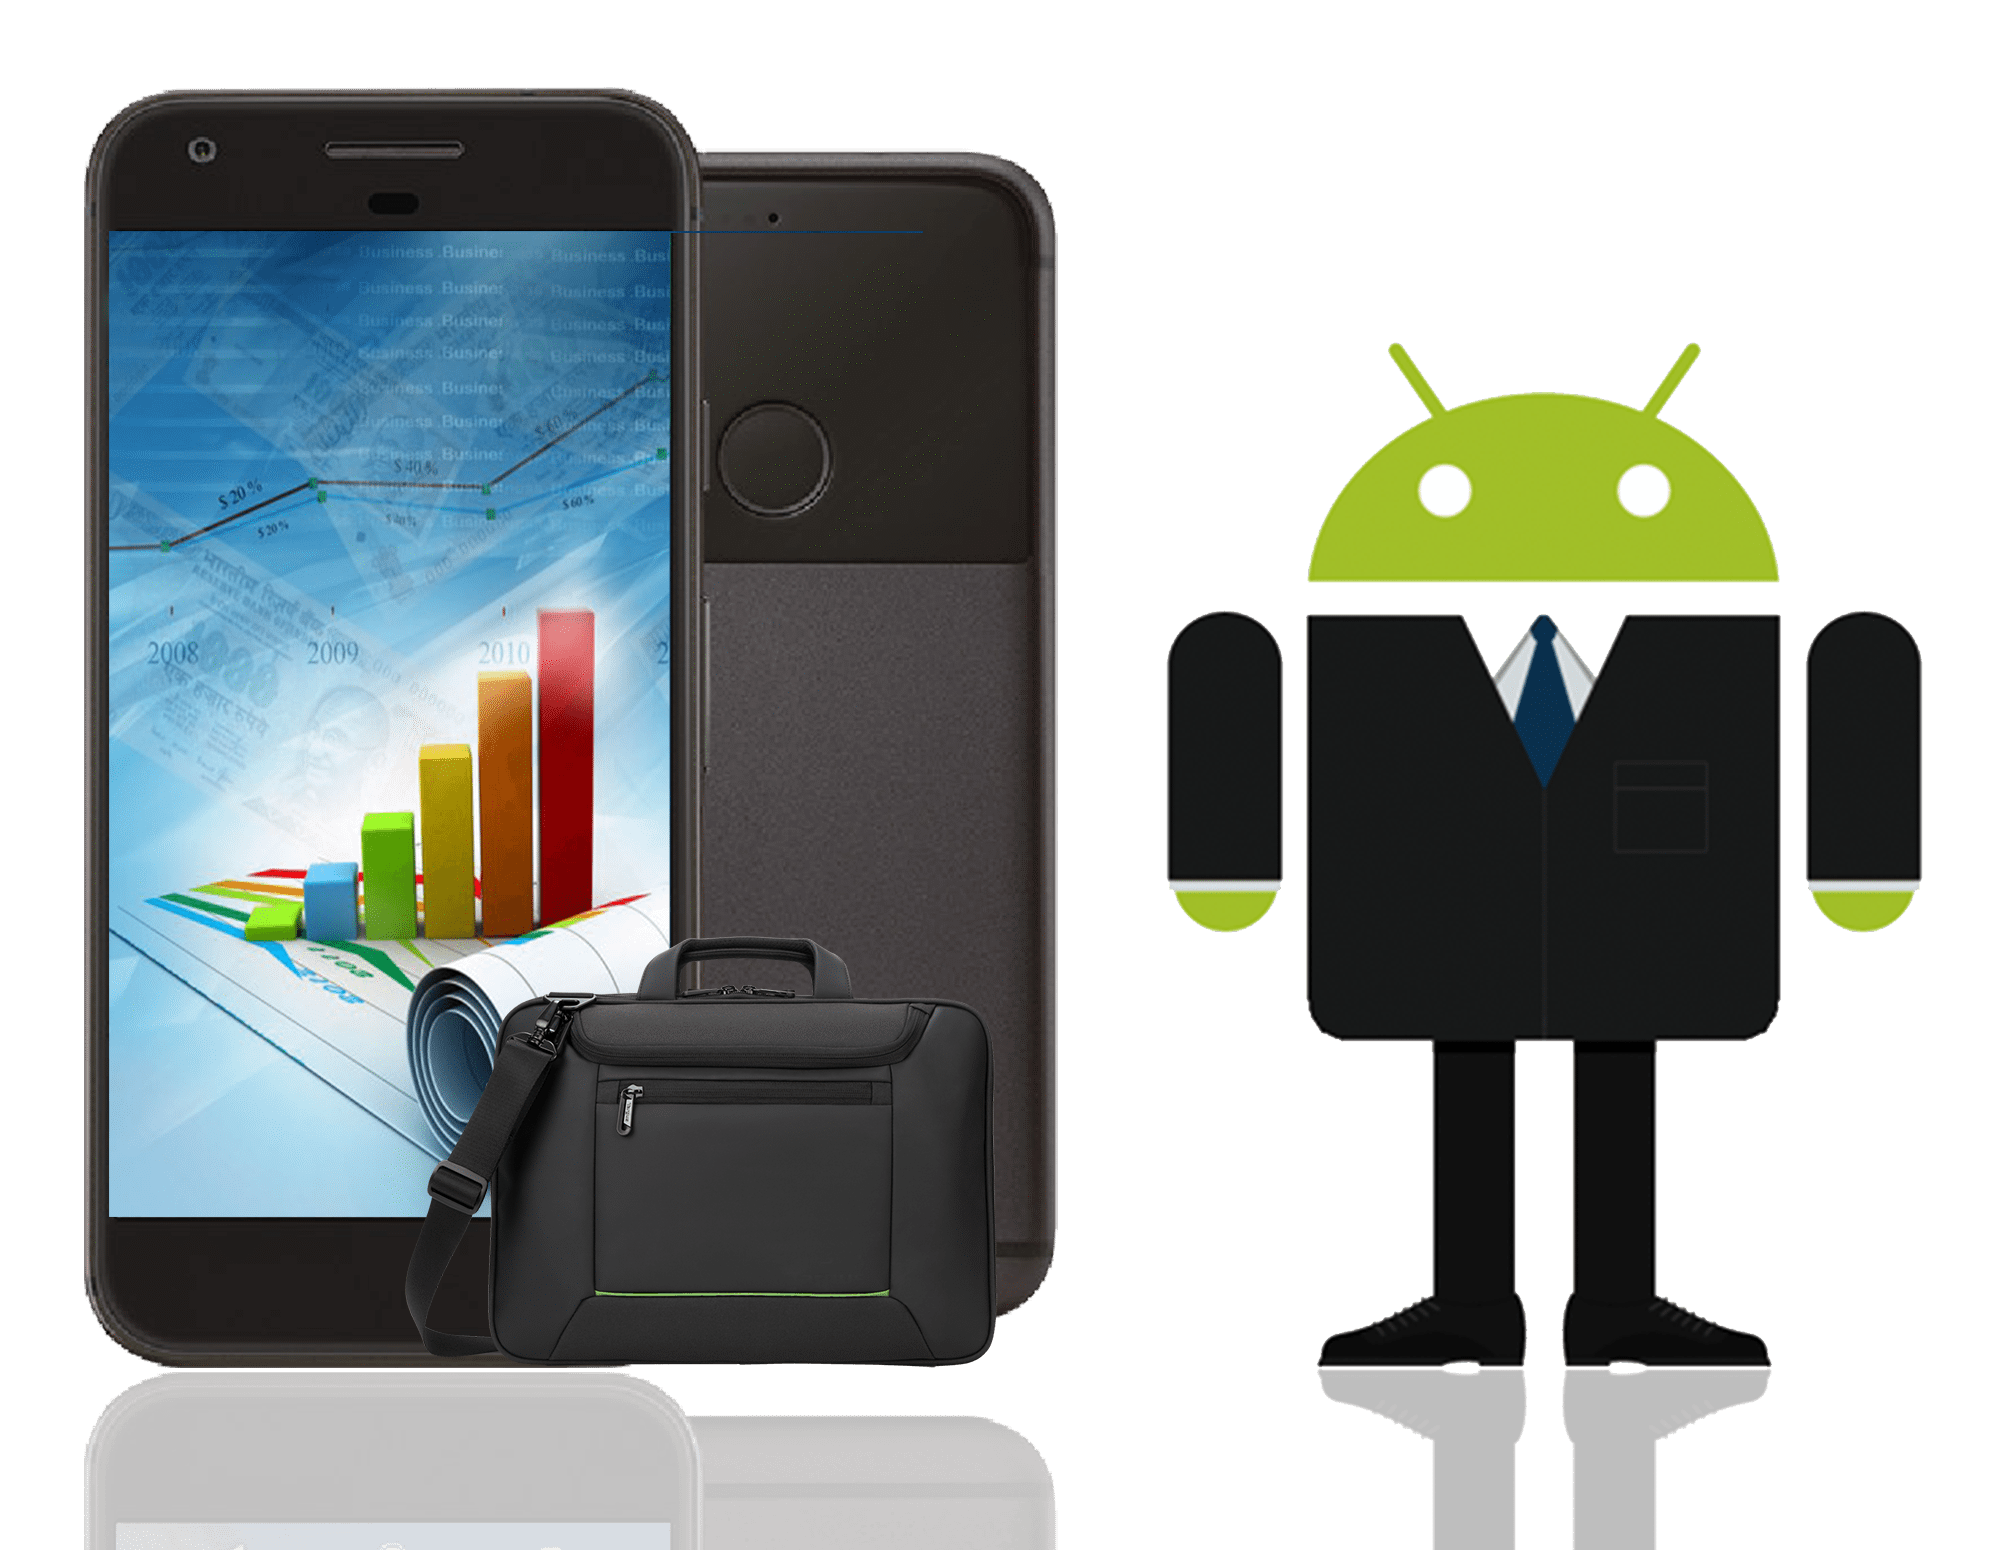 android business application